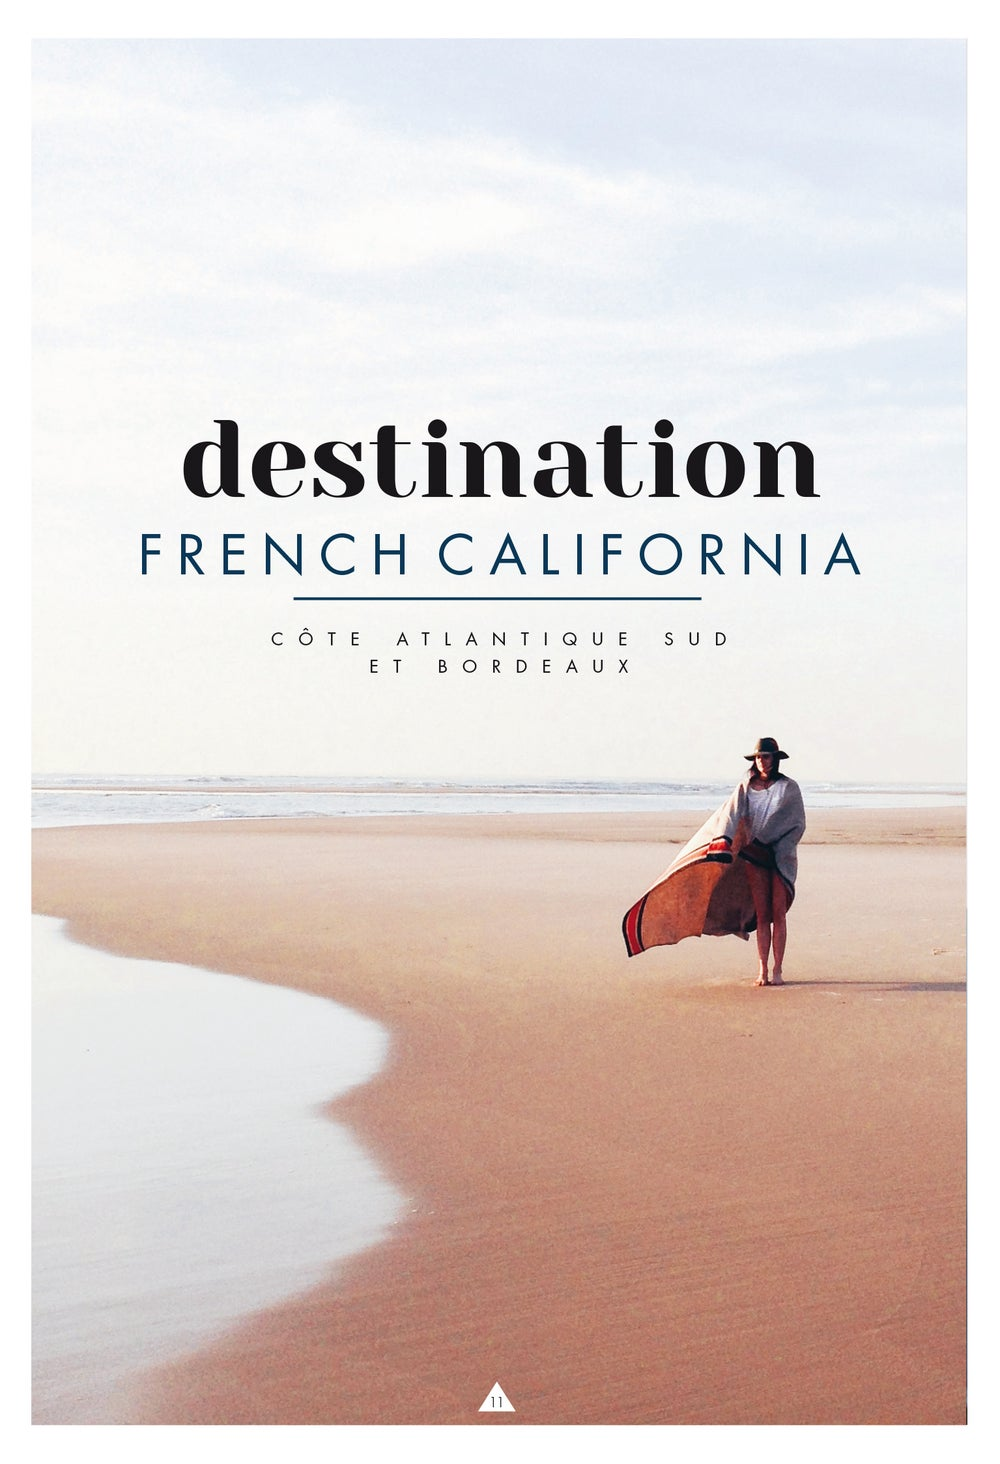 Image of French California